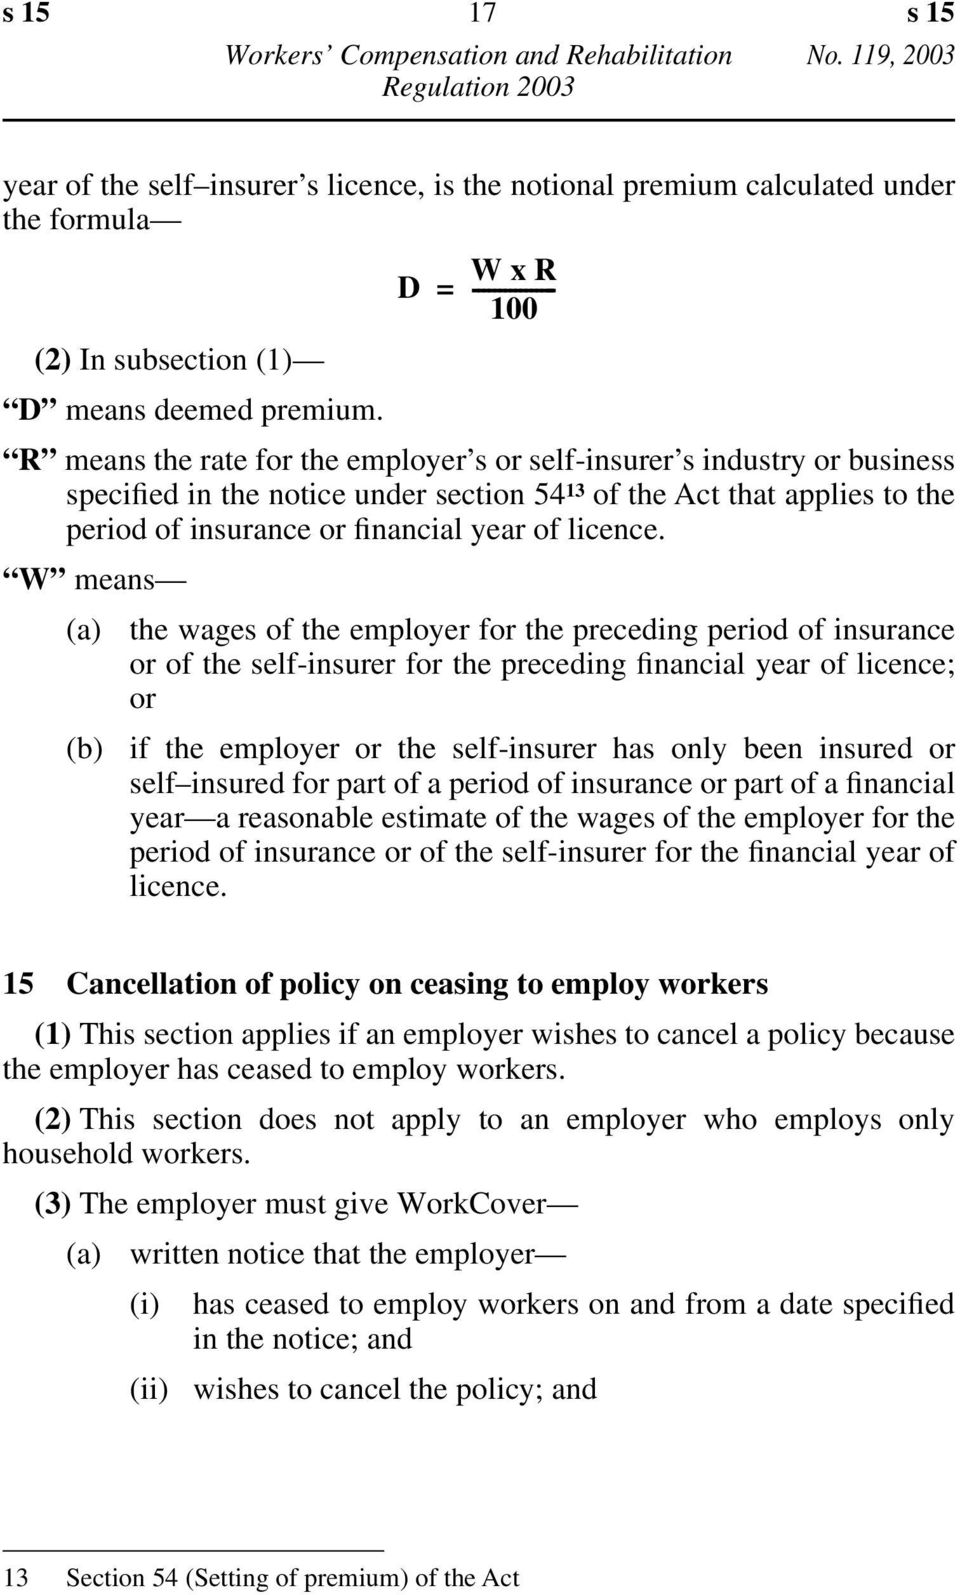 W means (a) the wages of the employer for the preceding period of insurance or of the self-insurer for the preceding financial year of licence; or (b) if the employer or the self-insurer has only